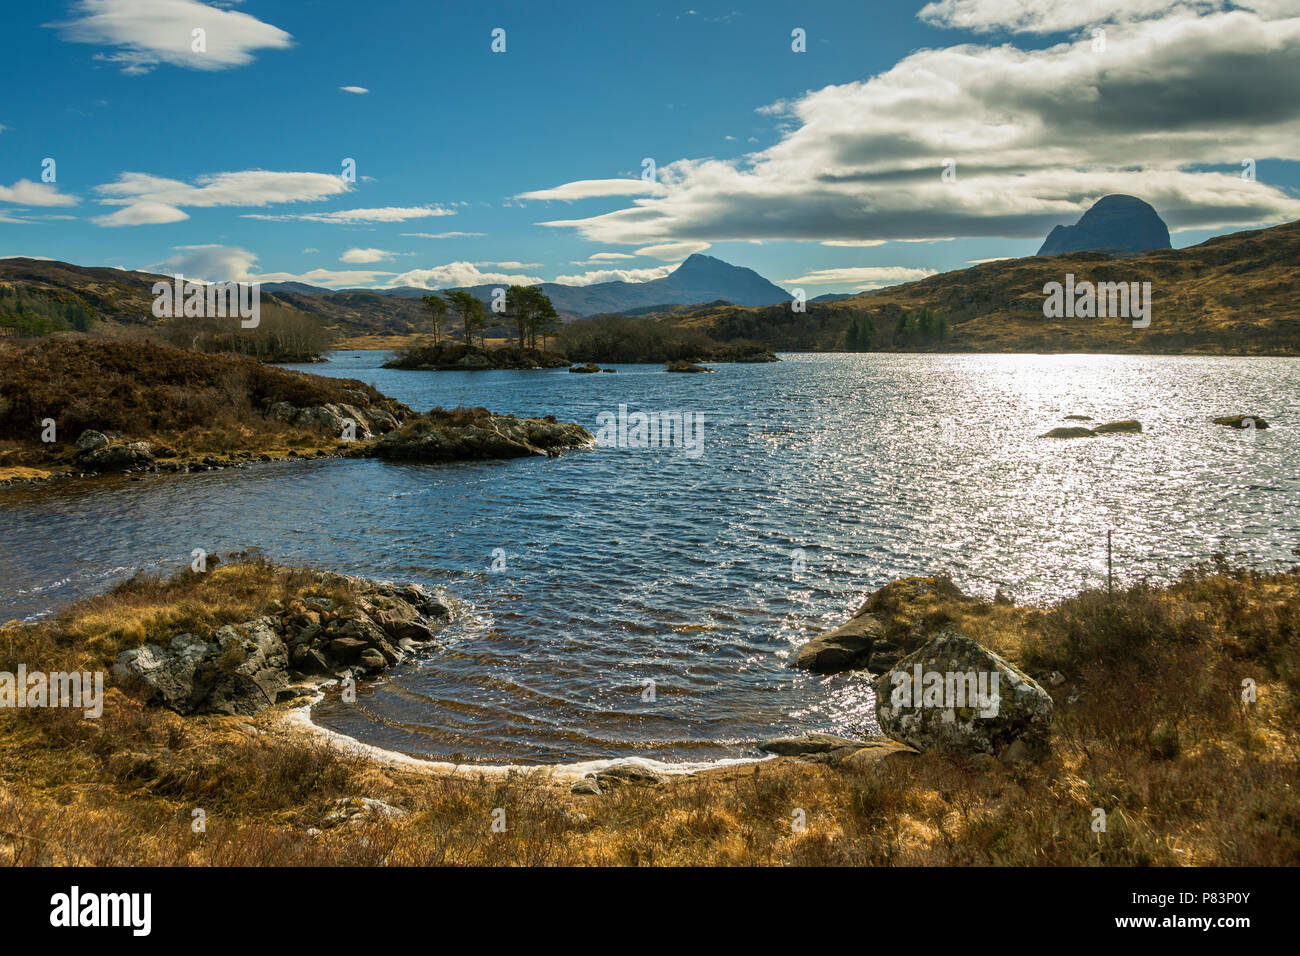 Canisp and Suilven from Loch Druim Suardalain, Glen Canisp Forest, near Lochinver, Coigach, Sutherland, Highland Region, Scotland, UK Stock Photo